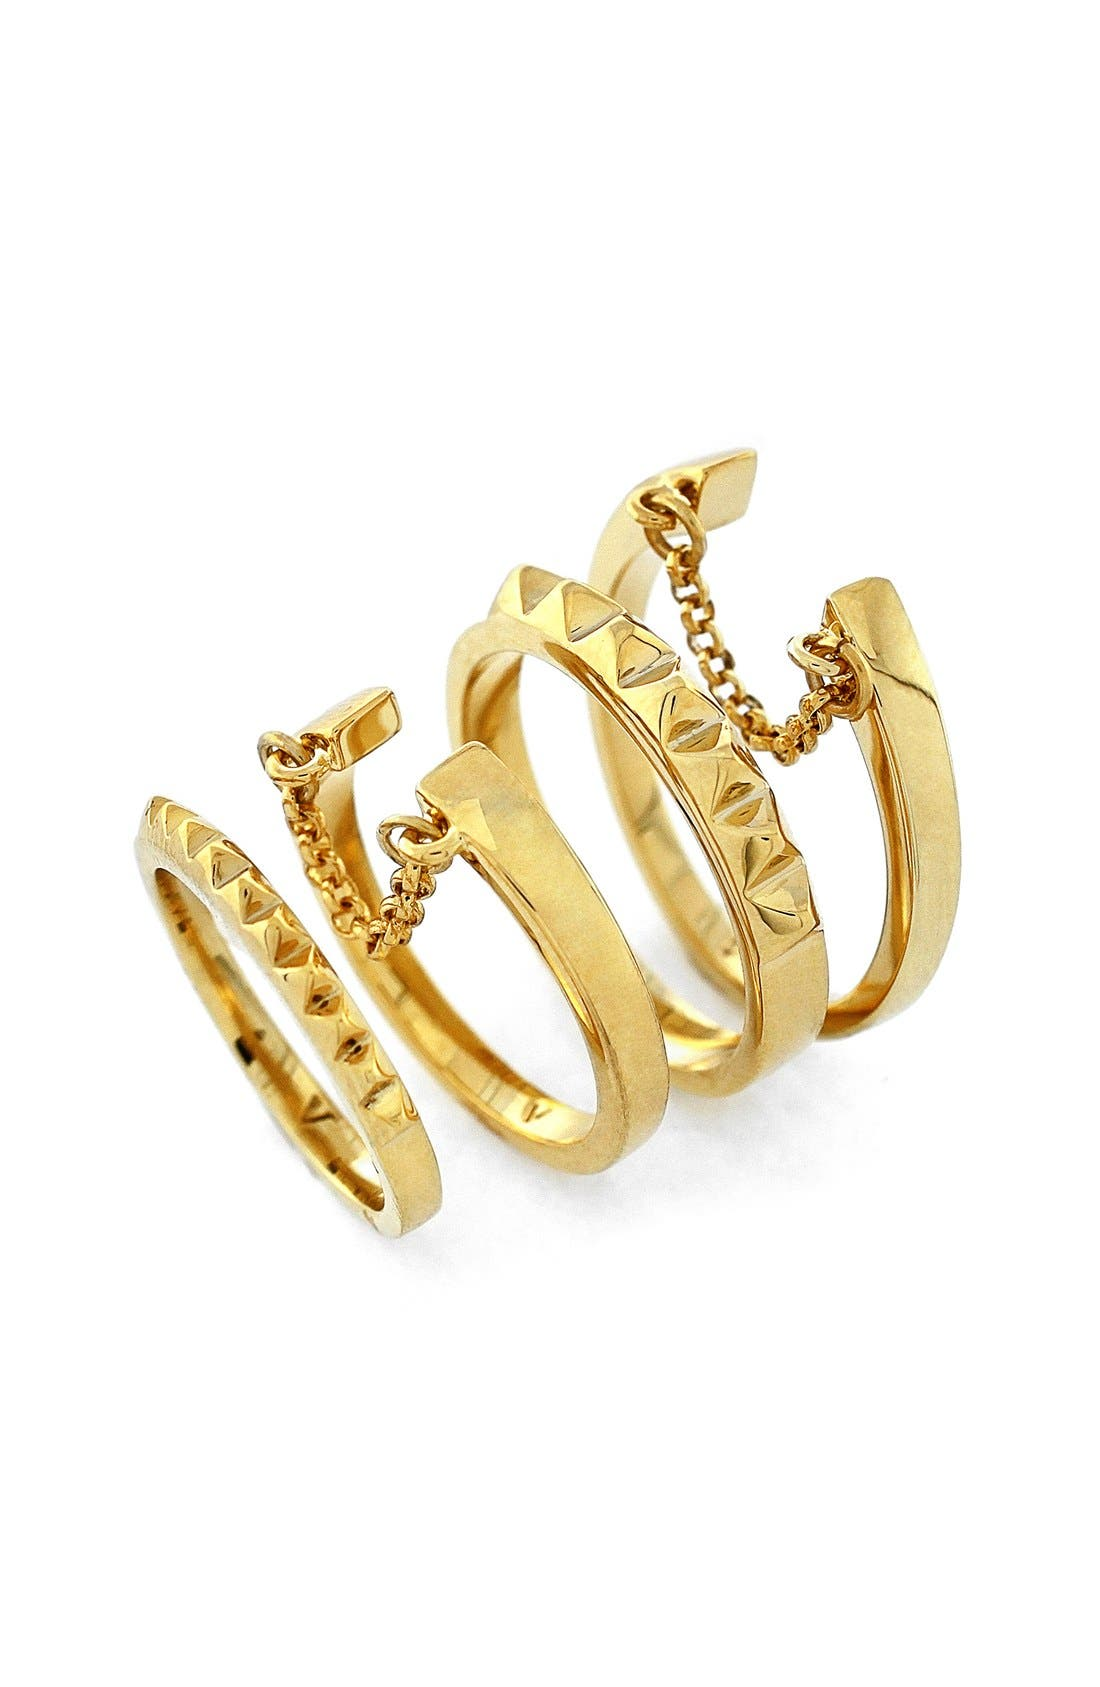 Alternate Image 1 Selected - Vince Camuto 'Super Fine' Band Rings (Set of 4)